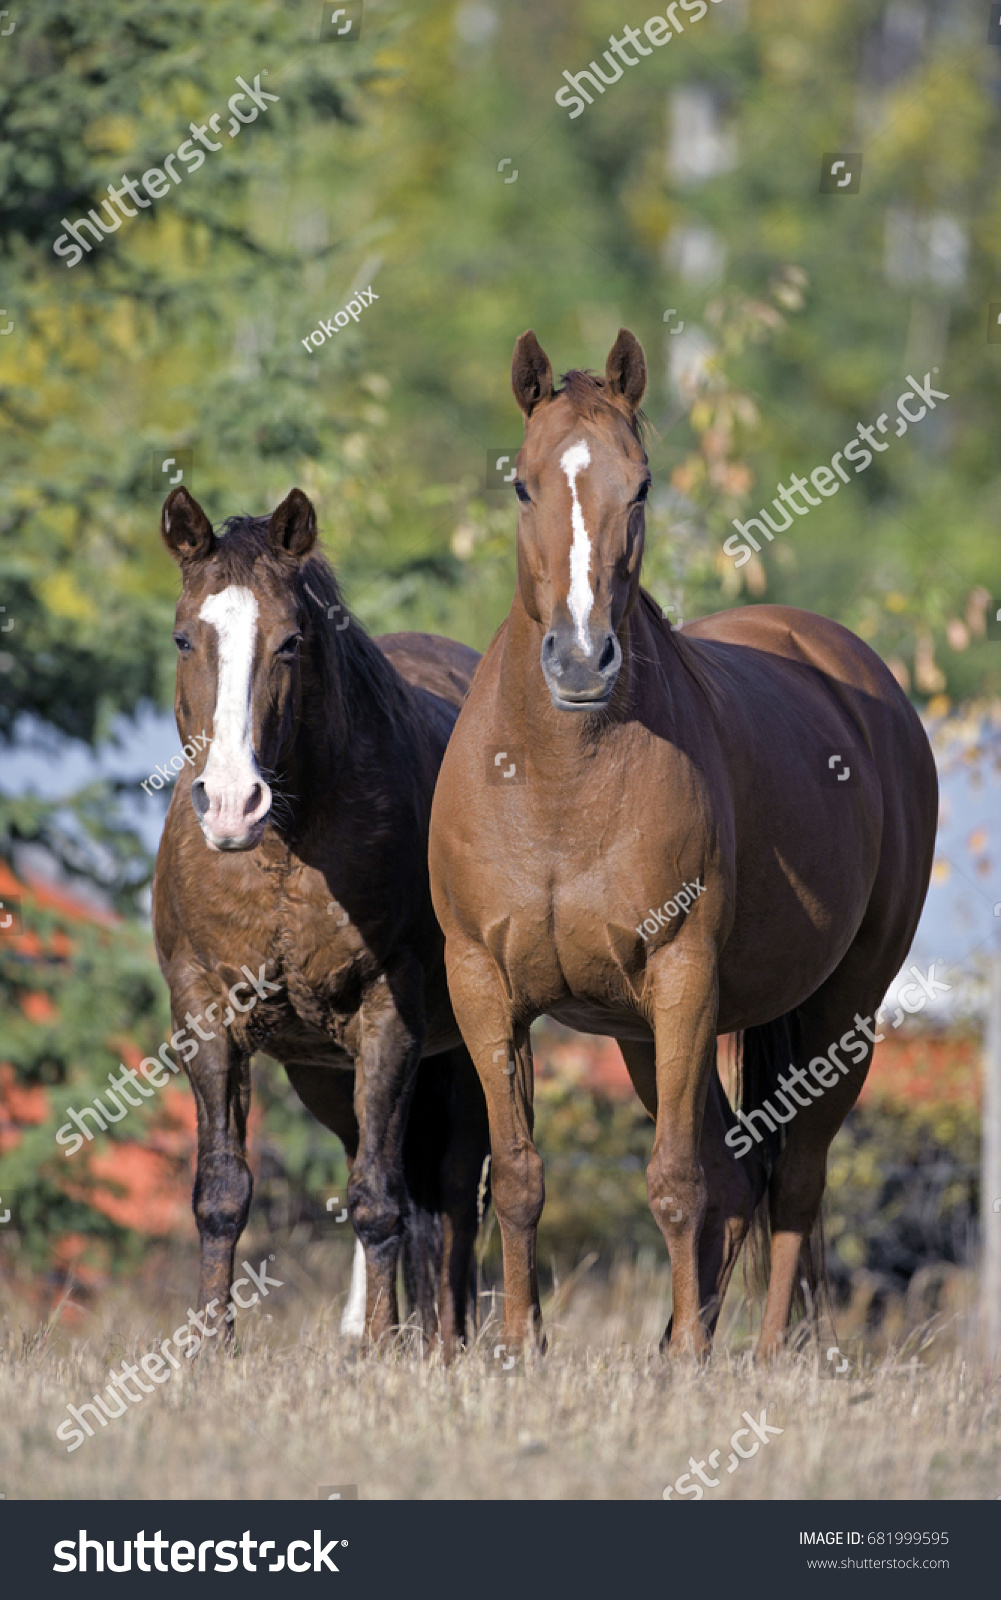 Quarterhorse Thoroughbred Horse Standing Together Field Stock Photo Edit Now 681999595